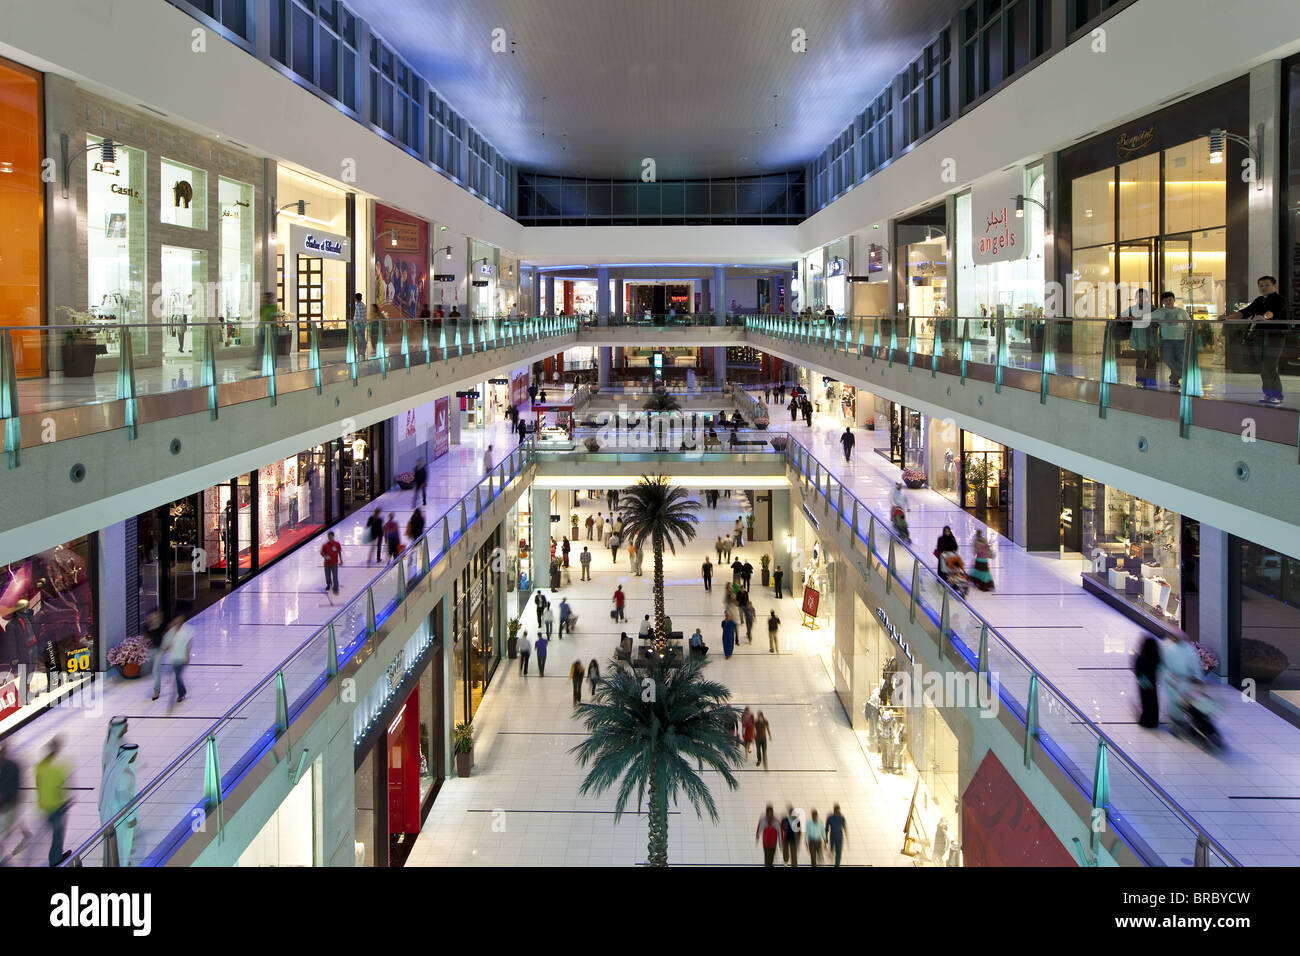 Dubai Mall, the largest shopping mall in the world with 1200 shops, part of the Burj Khalifa complex, Dubai, UAE - Stock Image